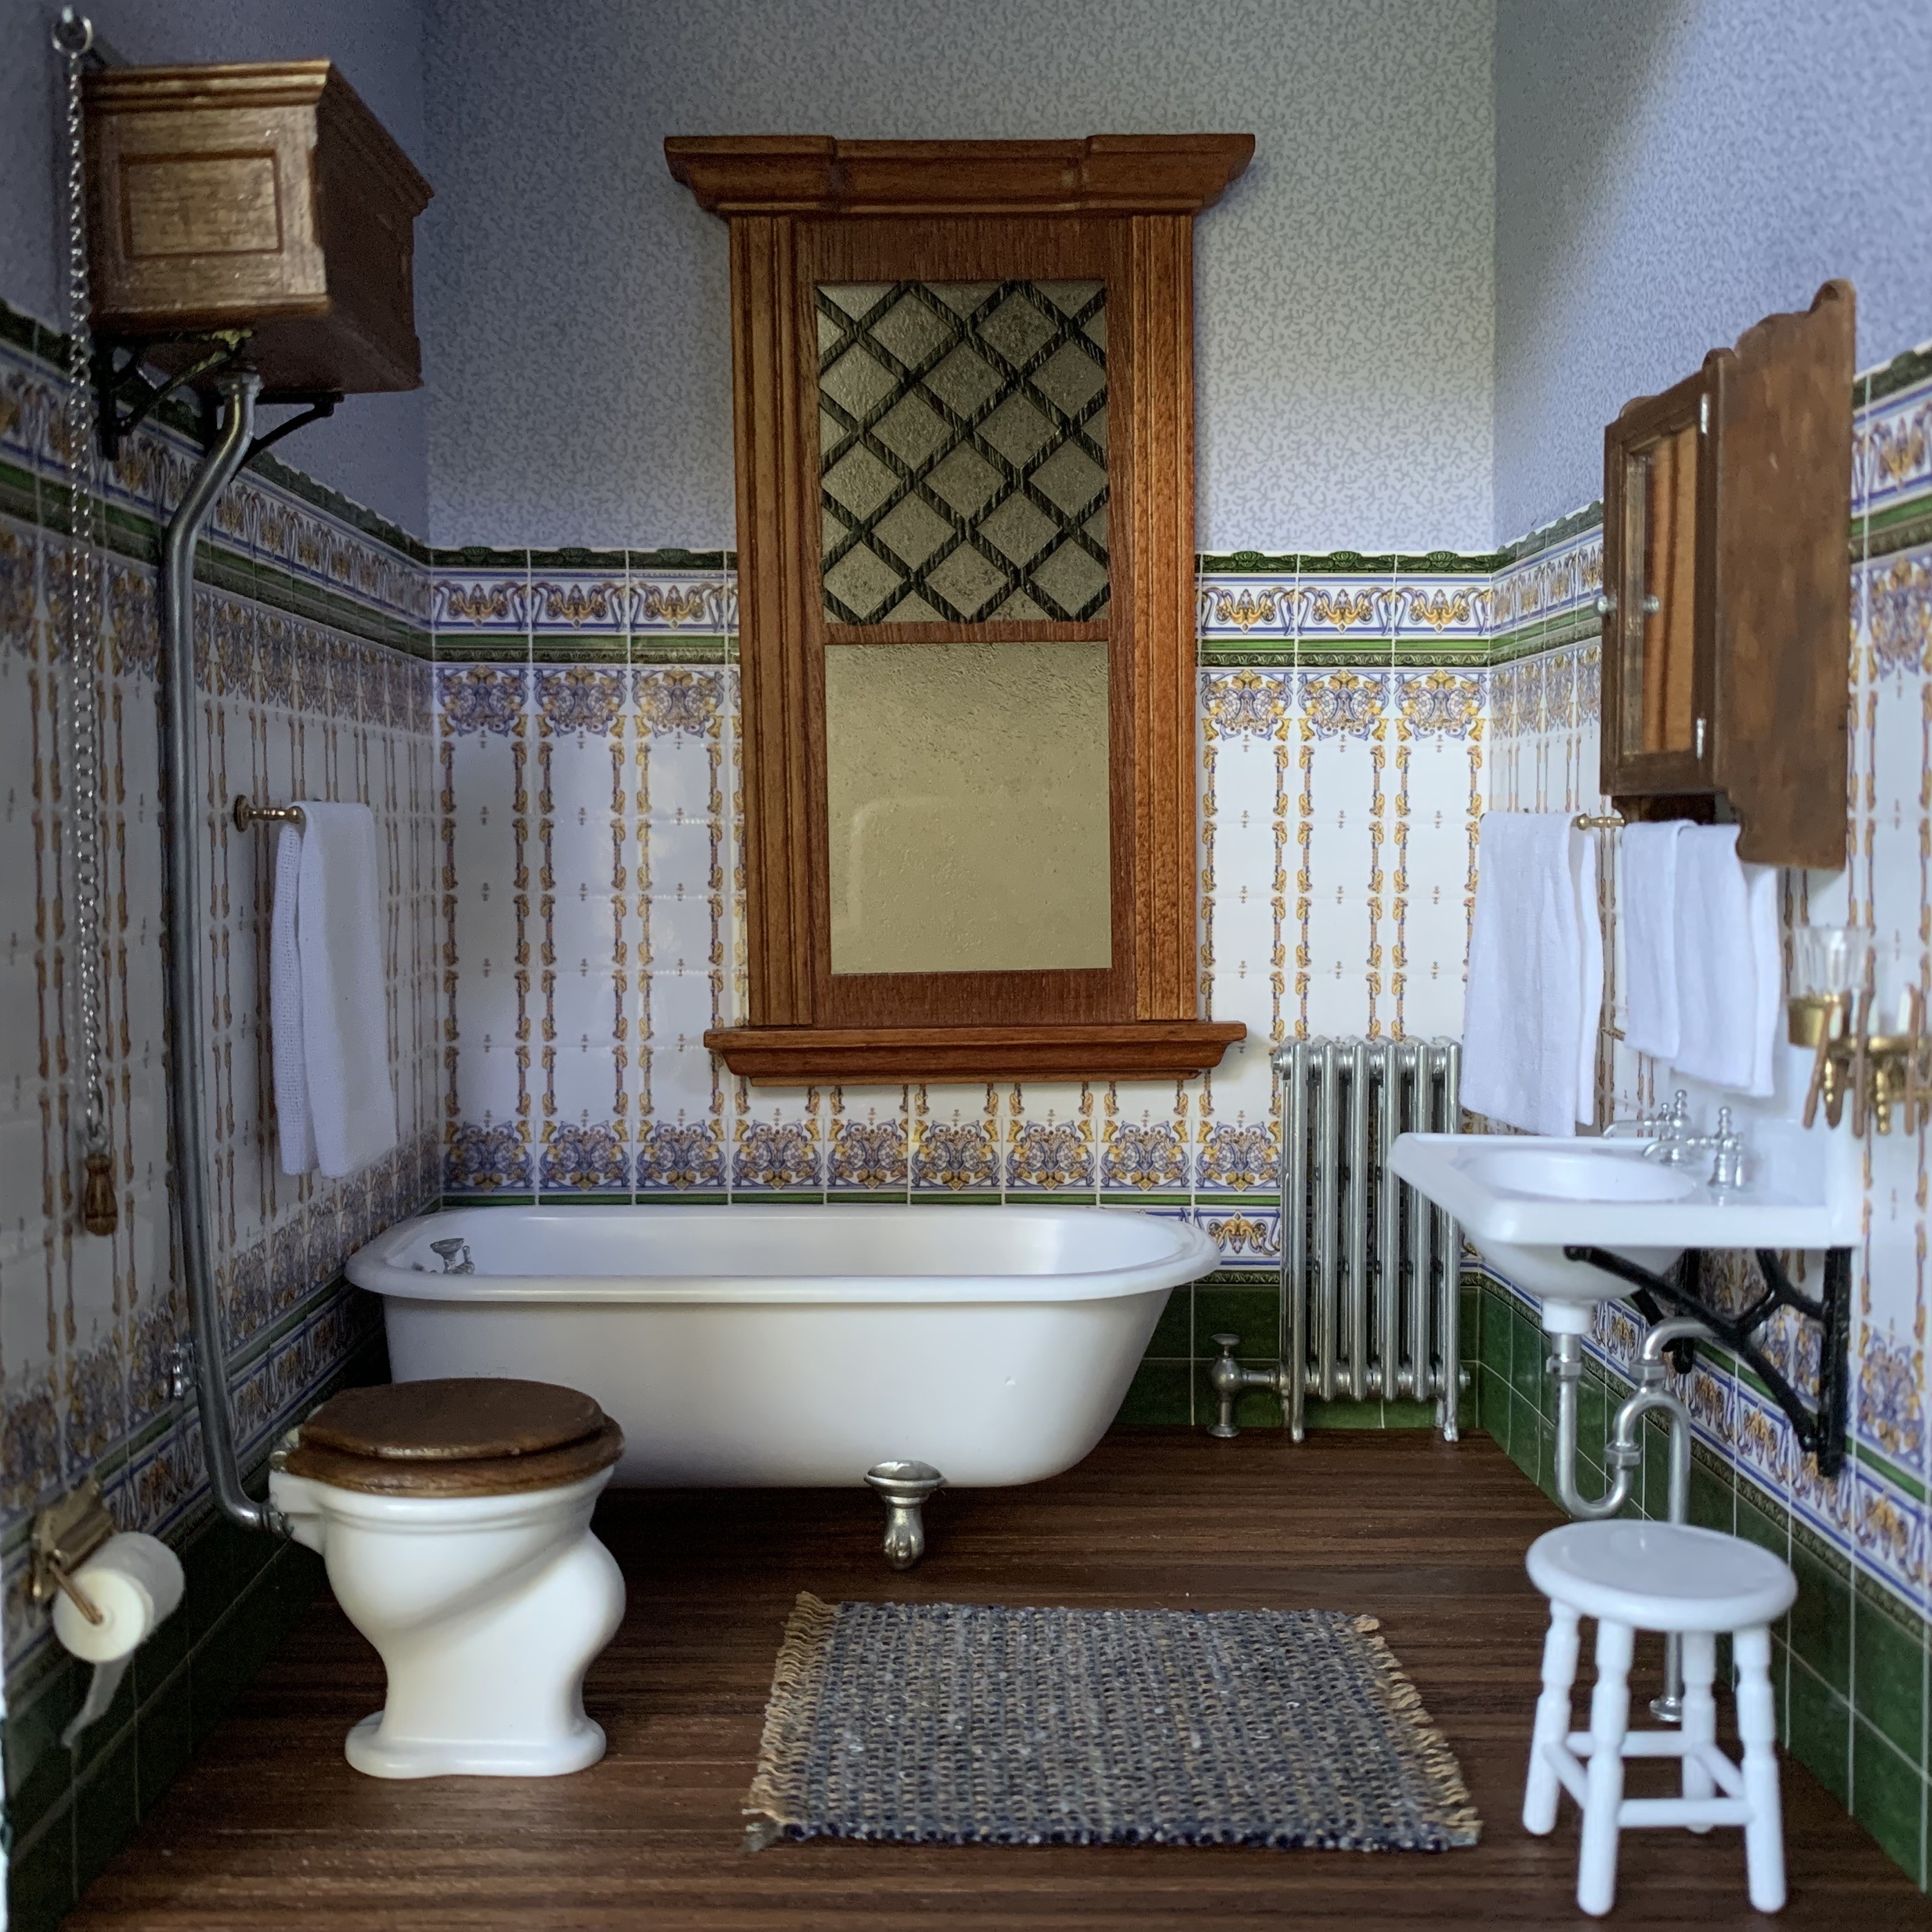 Victorian Bathroom with Chrysnbon Kits